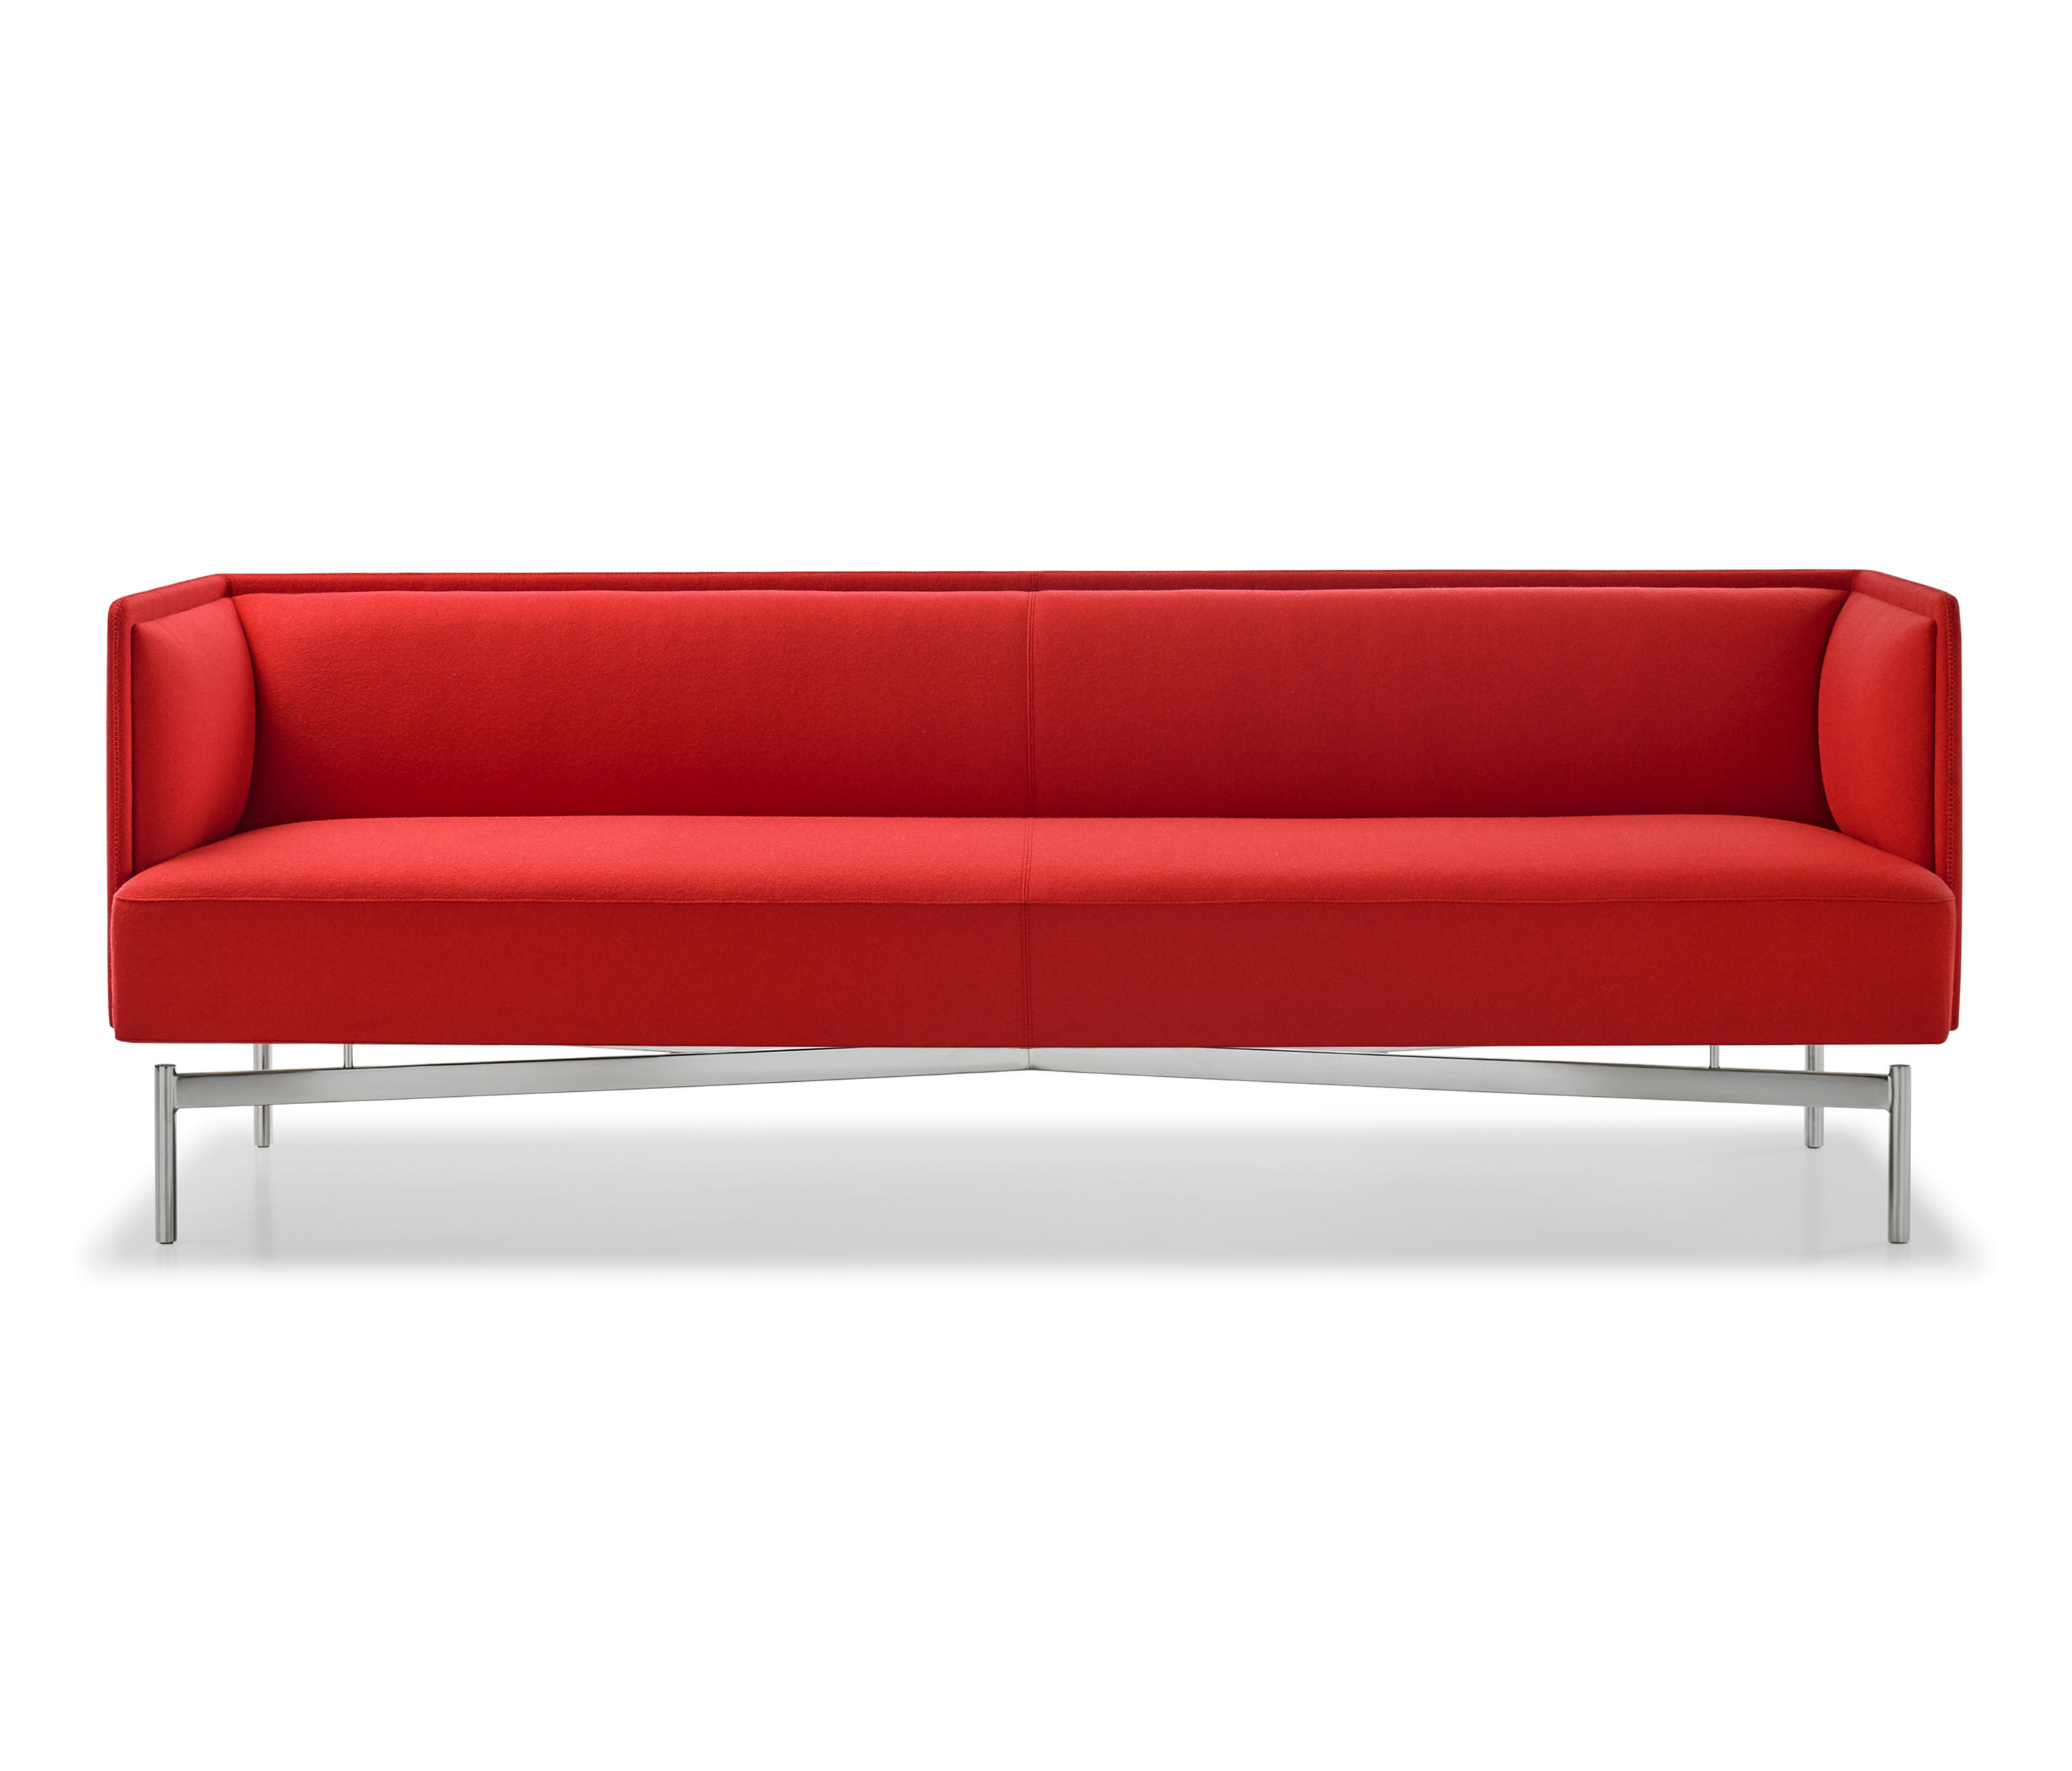 Schlafsofa design lounge  FINALE SOFA - Lounge sofas from Bernhardt Design | Architonic